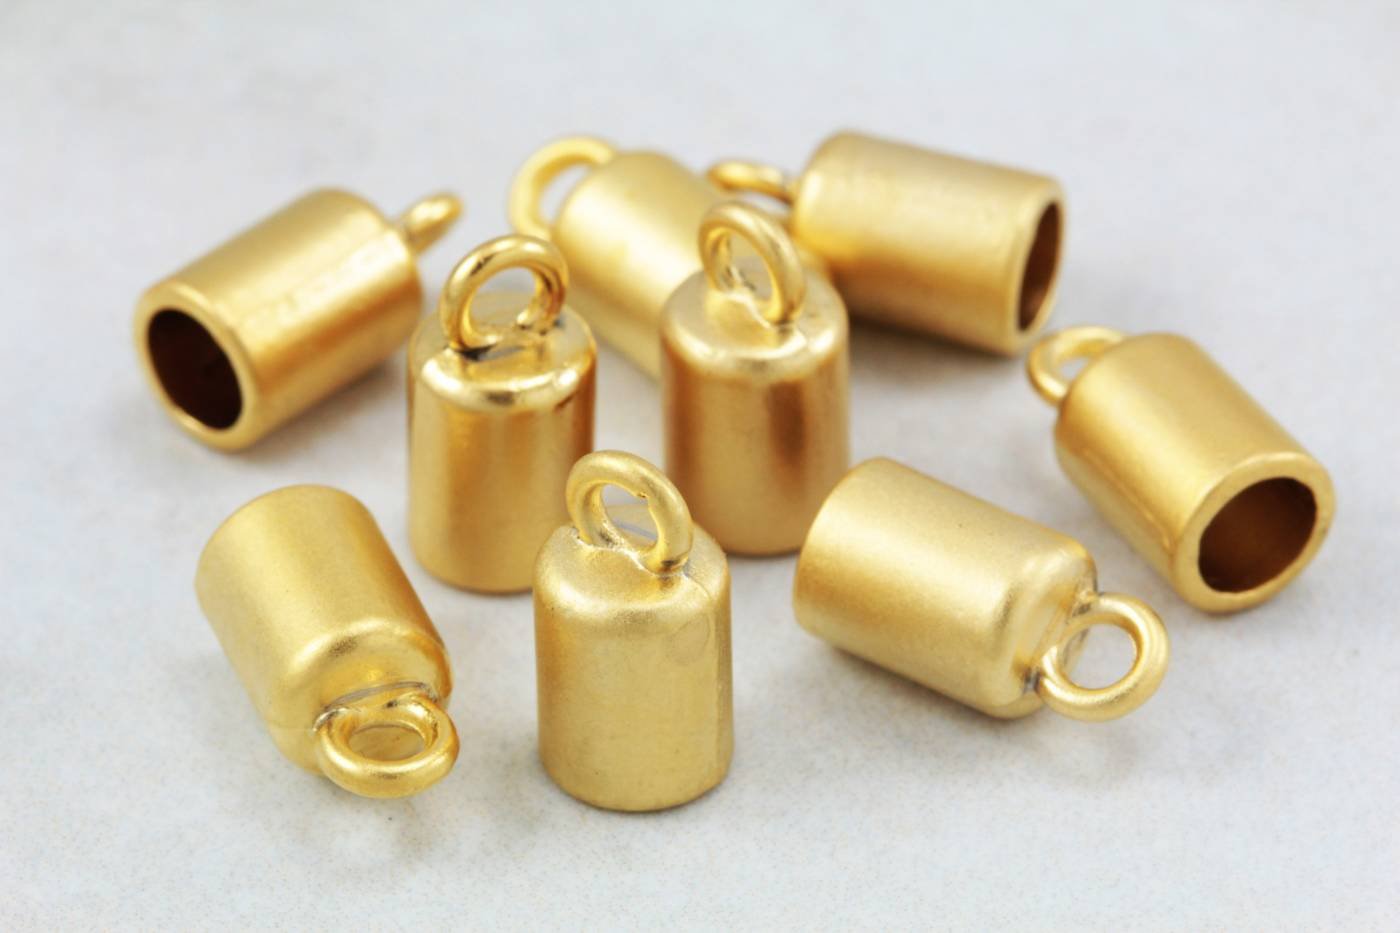 gold-metal-round-5mm-hole-end-caps.jpg